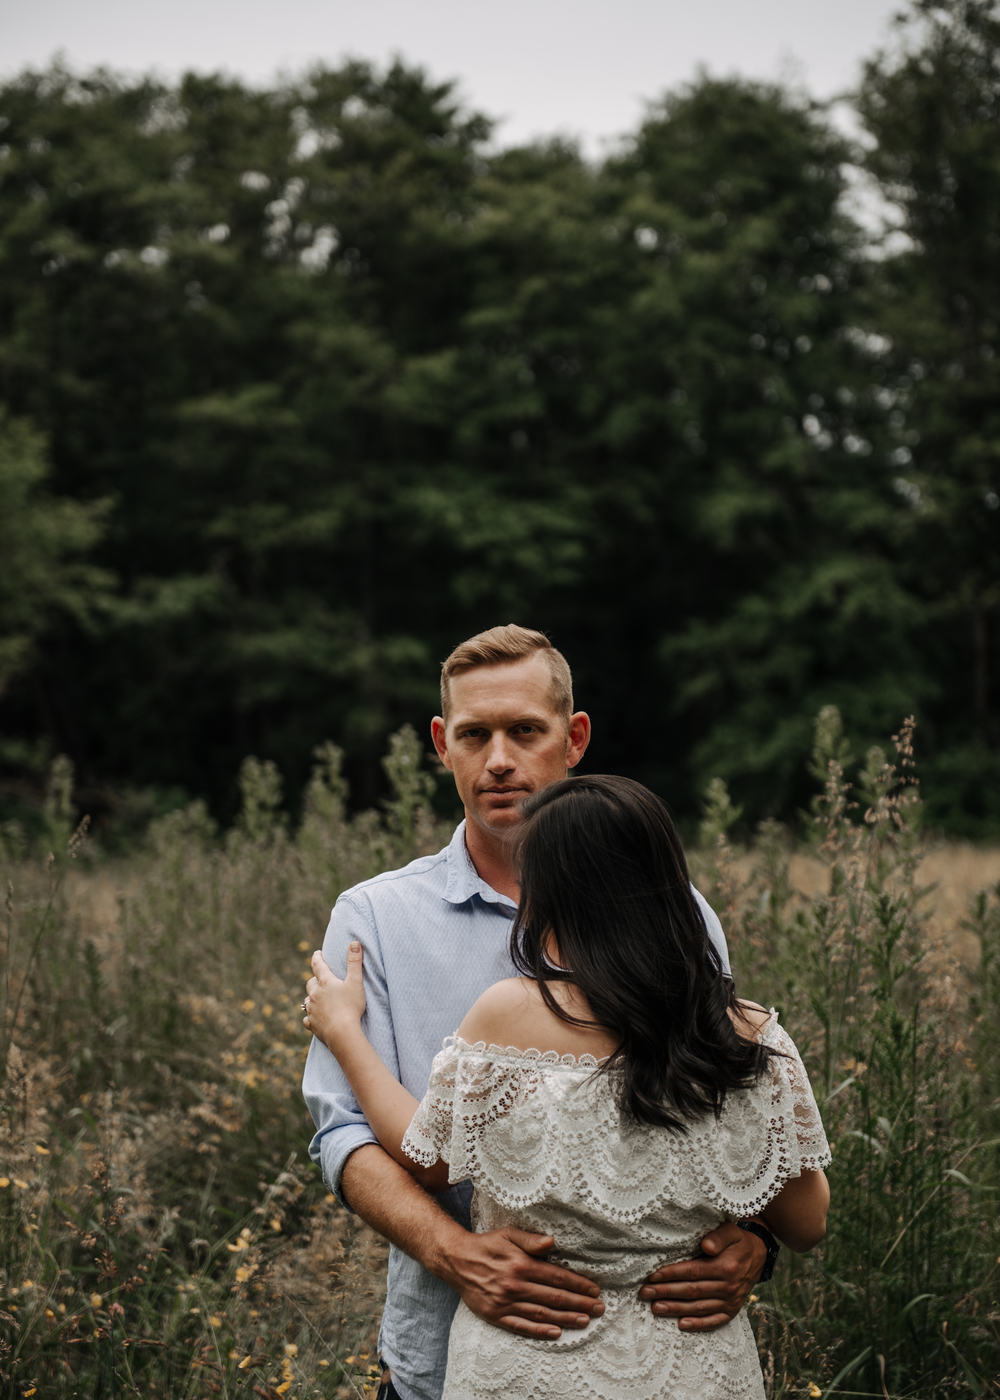 009-kaoverii-silva-ht-prewedding-vancouver-photography-redwood-park-1.png